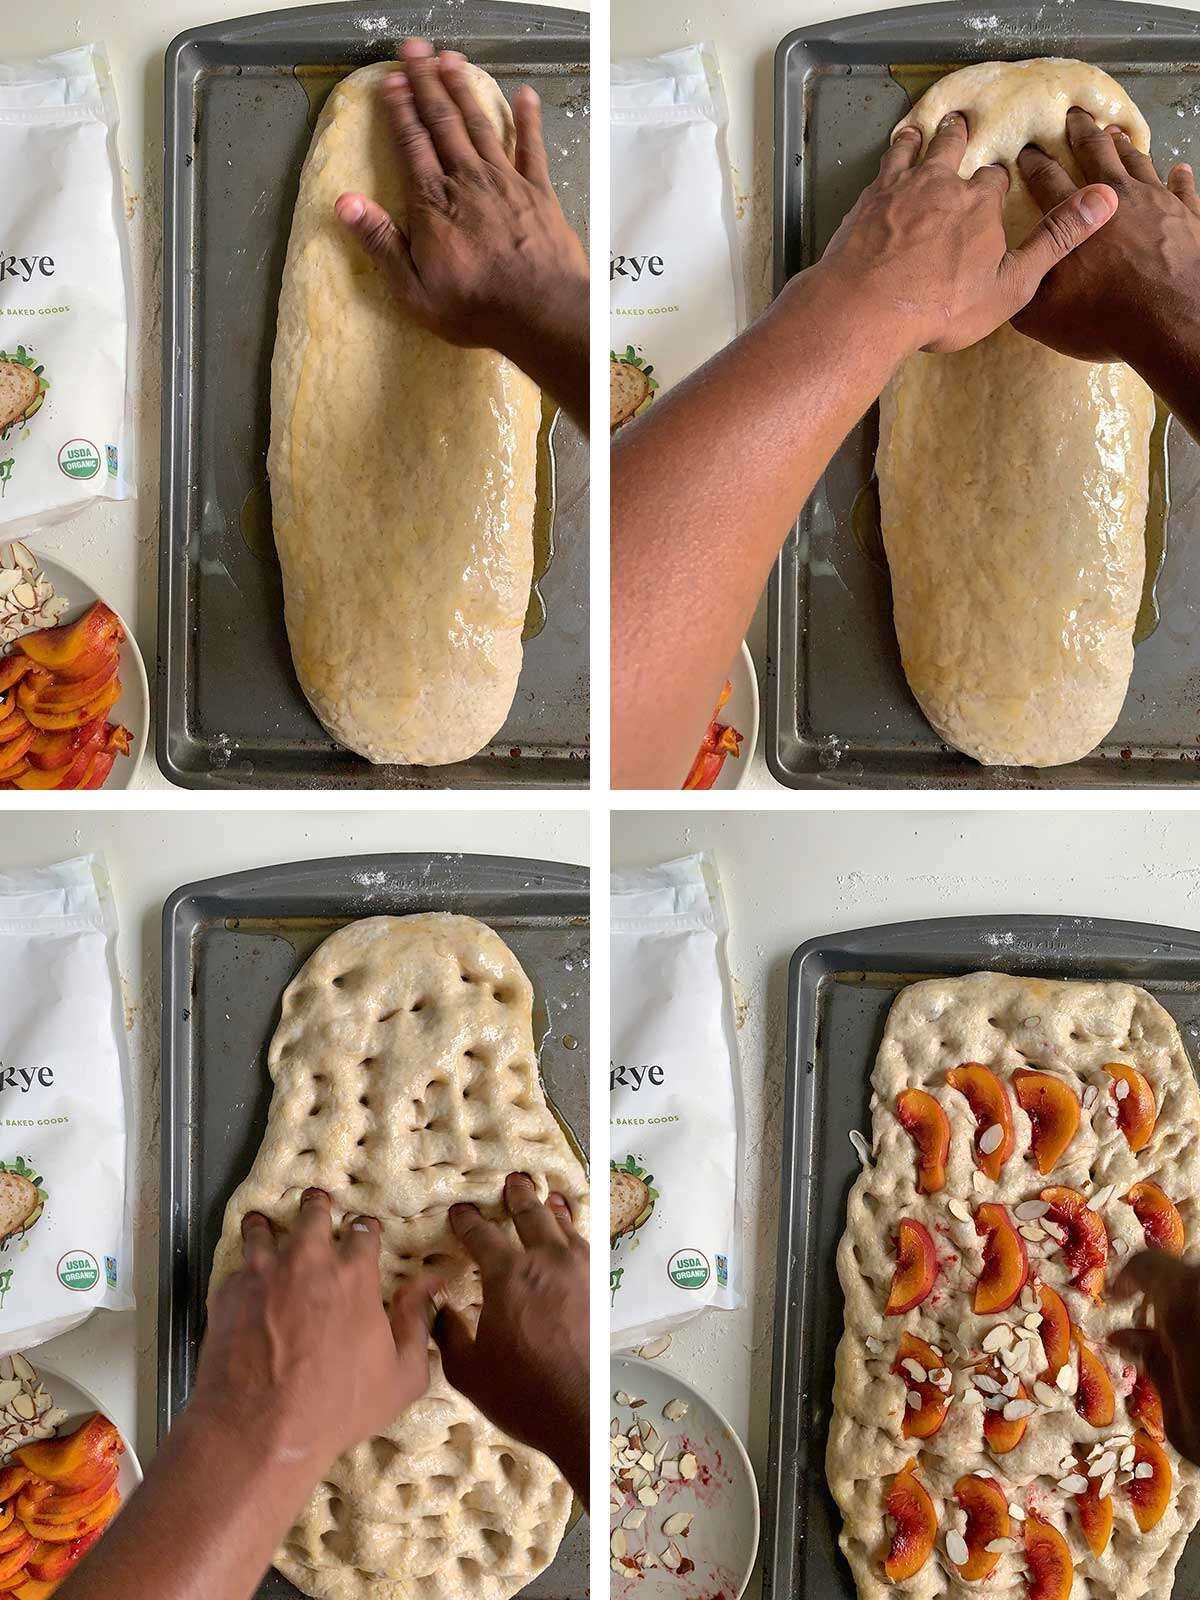 Four photos showing hands dimpling then topping the focaccia dough